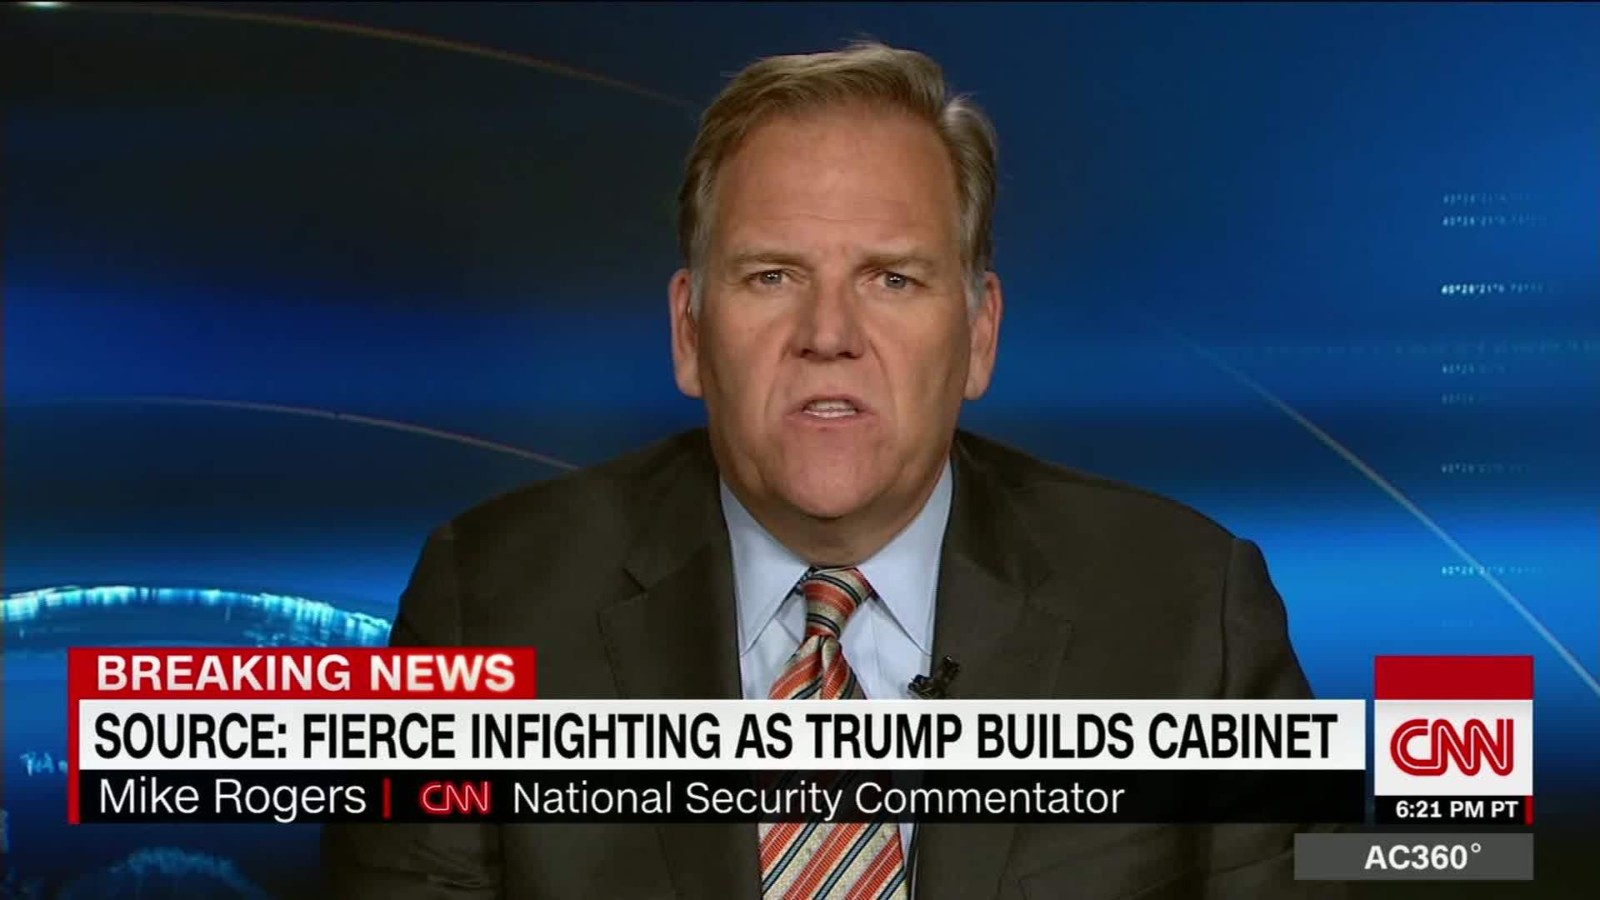 Mike Rogers parts ways with transition team - CNN Video